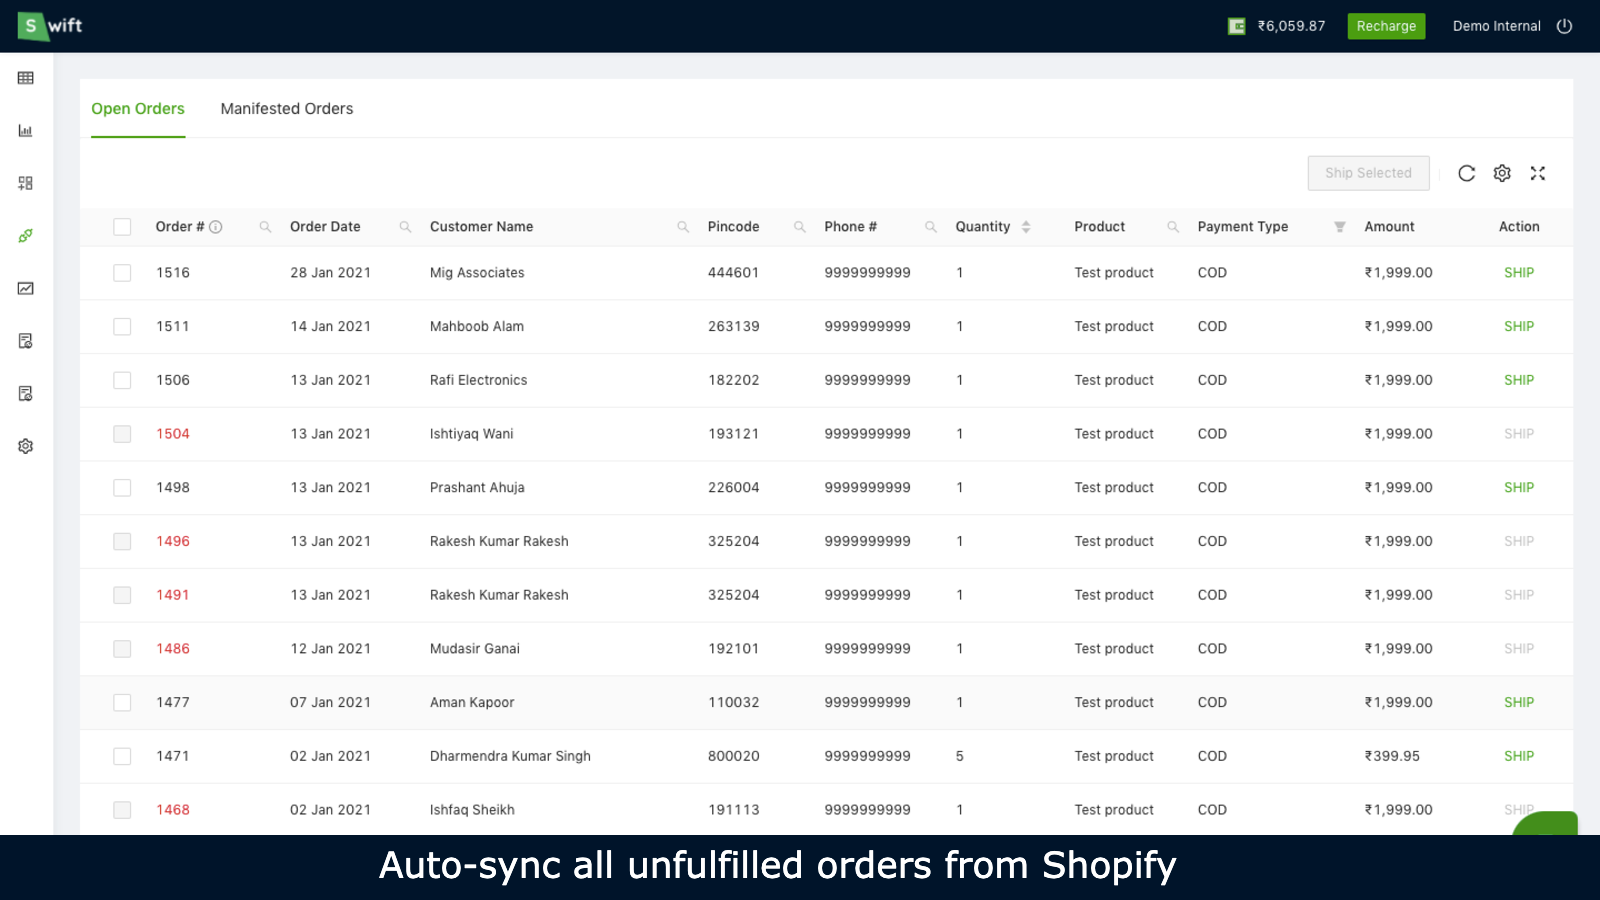 Auto-sync all orders from Shopify